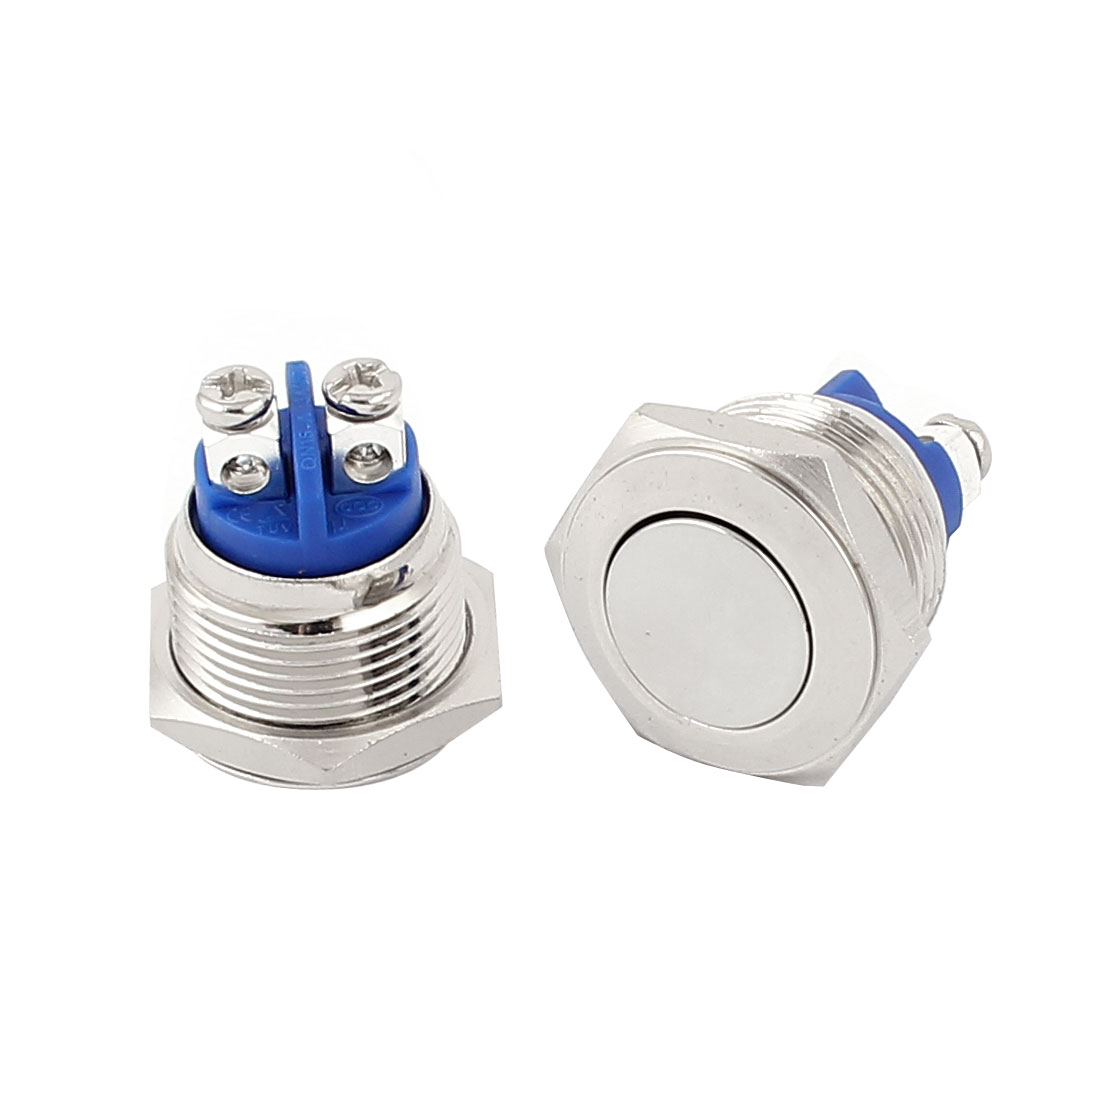 AC 250V 3A 2 Screw Pins 1NO 1NC Momentary 16mm Stainless Steel Pushbutton Switch 2Pcs